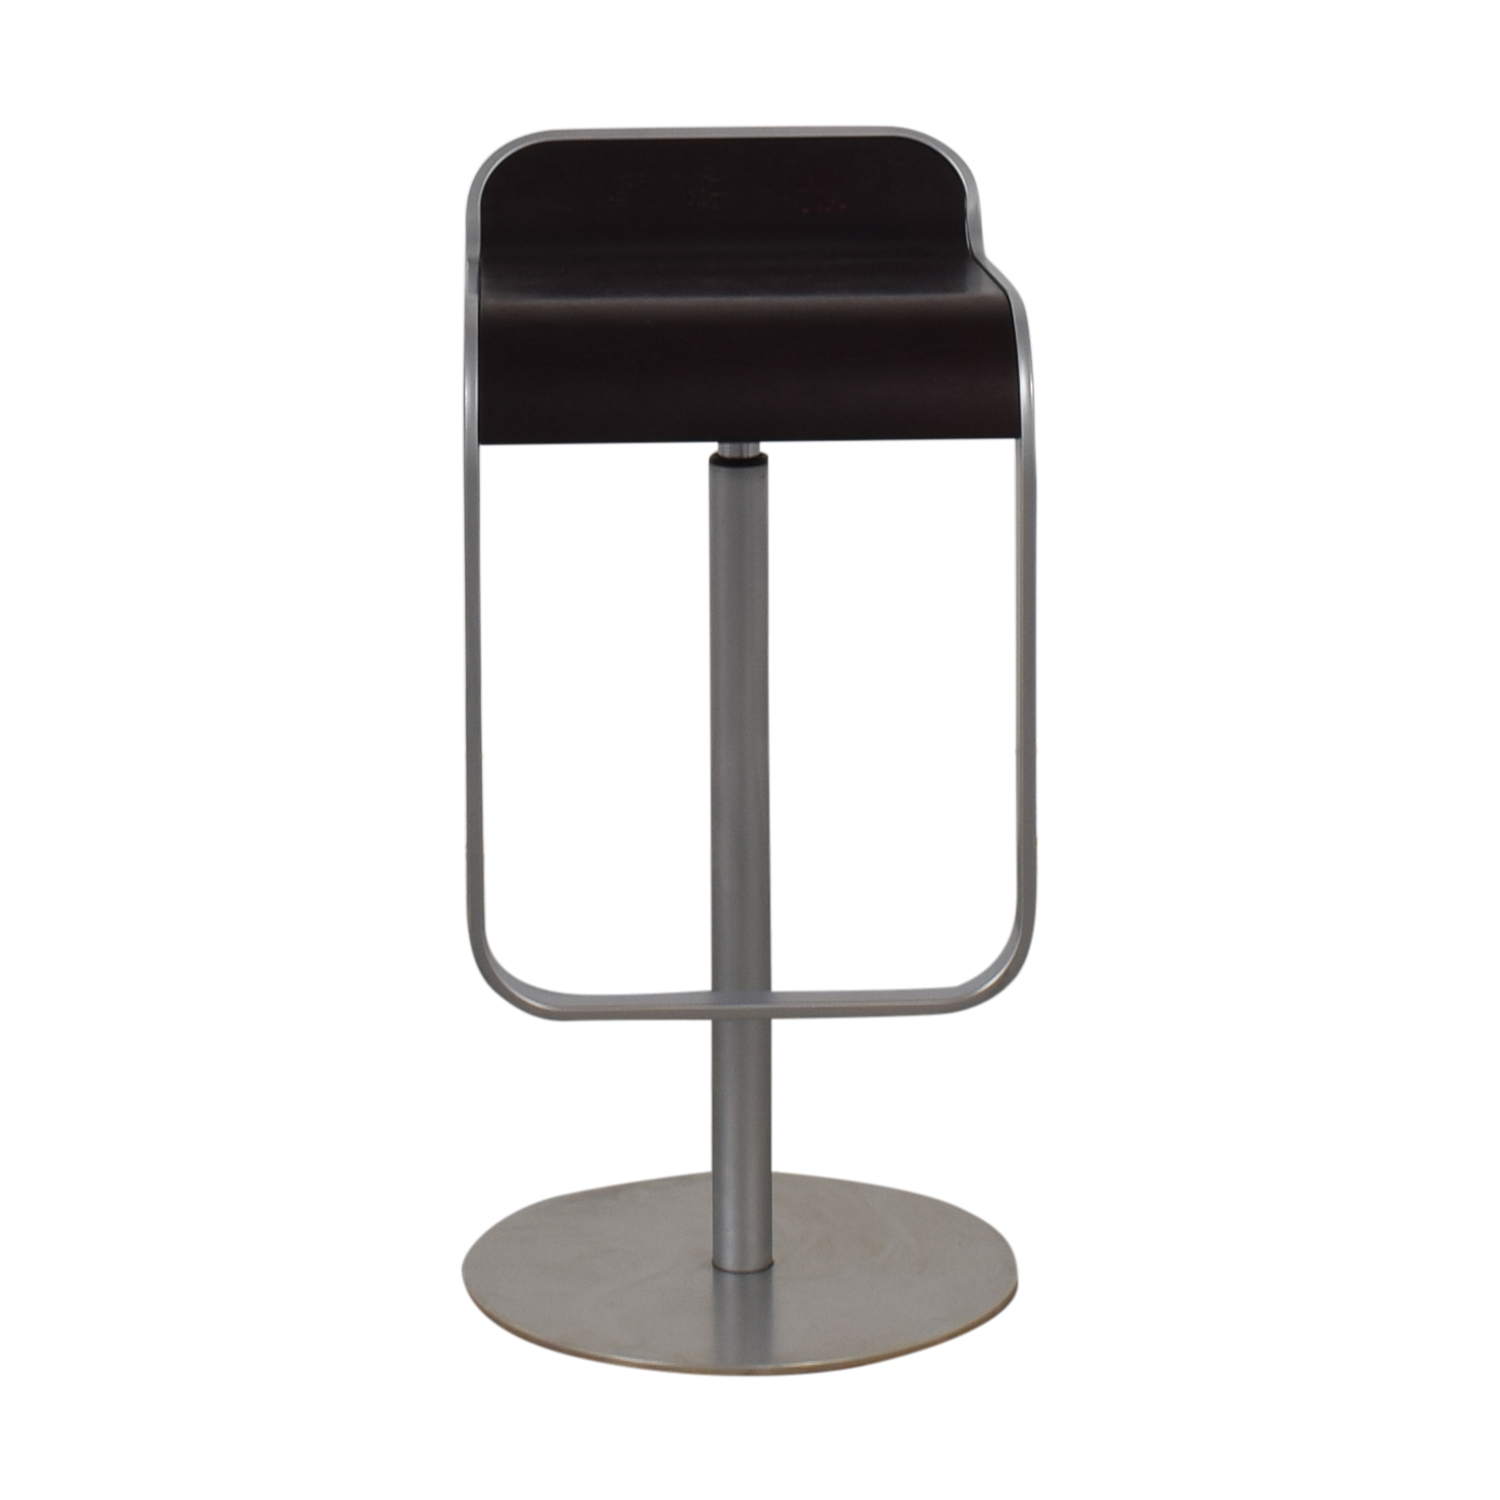 buy Design Within Reach LEM Piston Stool Design Within Reach Chairs